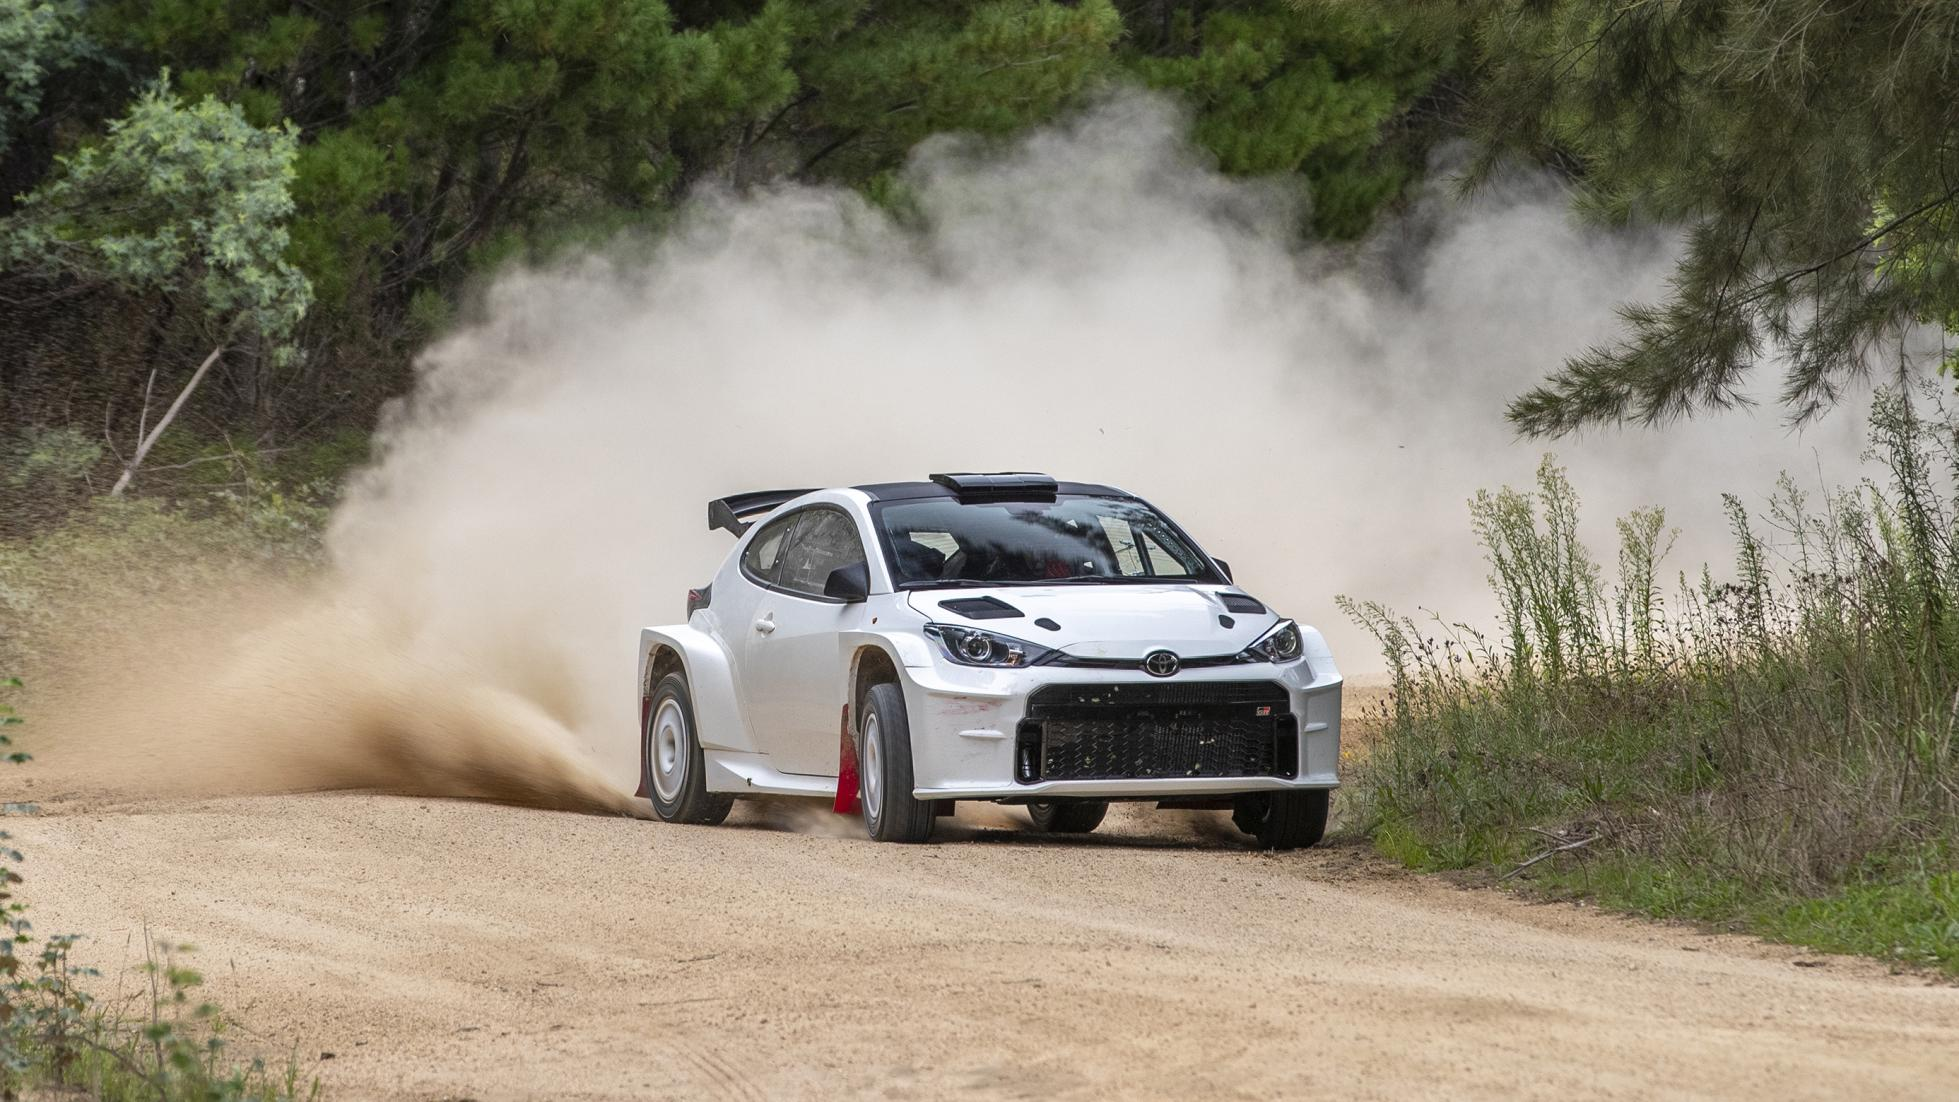 The Toyota GR Yaris AP4 Rally Car on the dirt track different angle